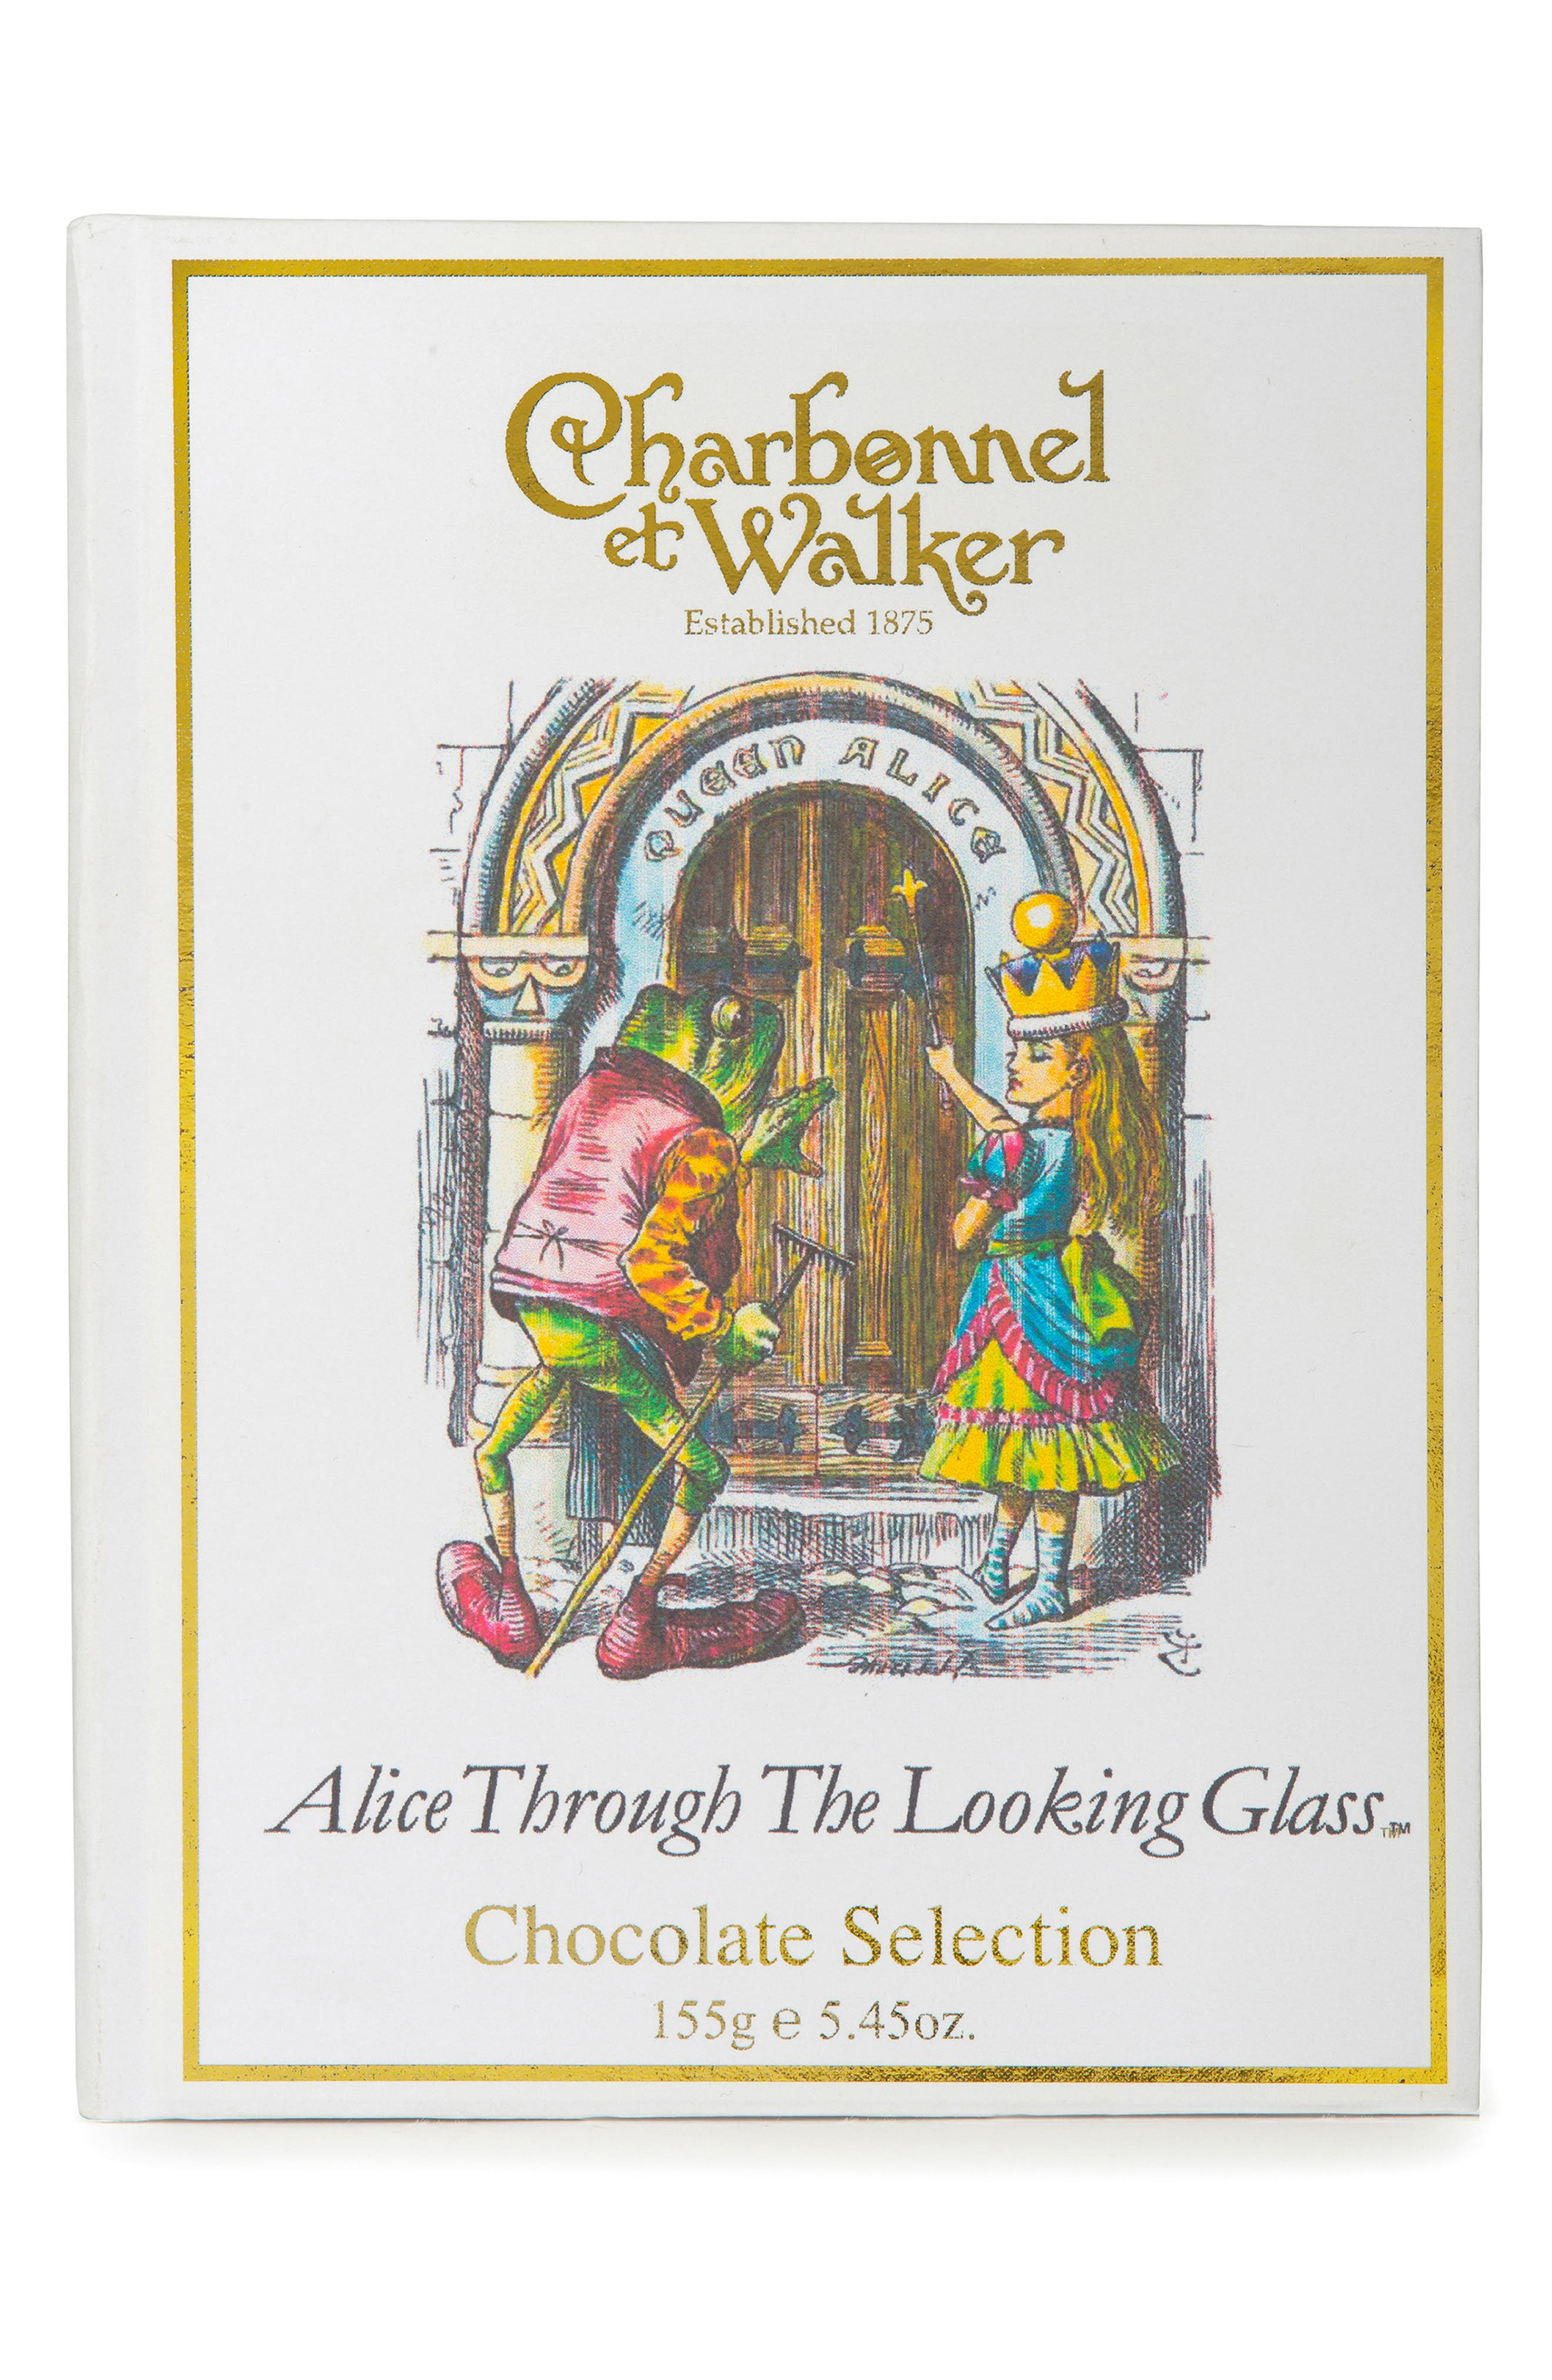 Alternate Image 1 Selected - Charbonnel et Walker Fine Chocolate Selection in Alice Through the Looking Glass Gift Box